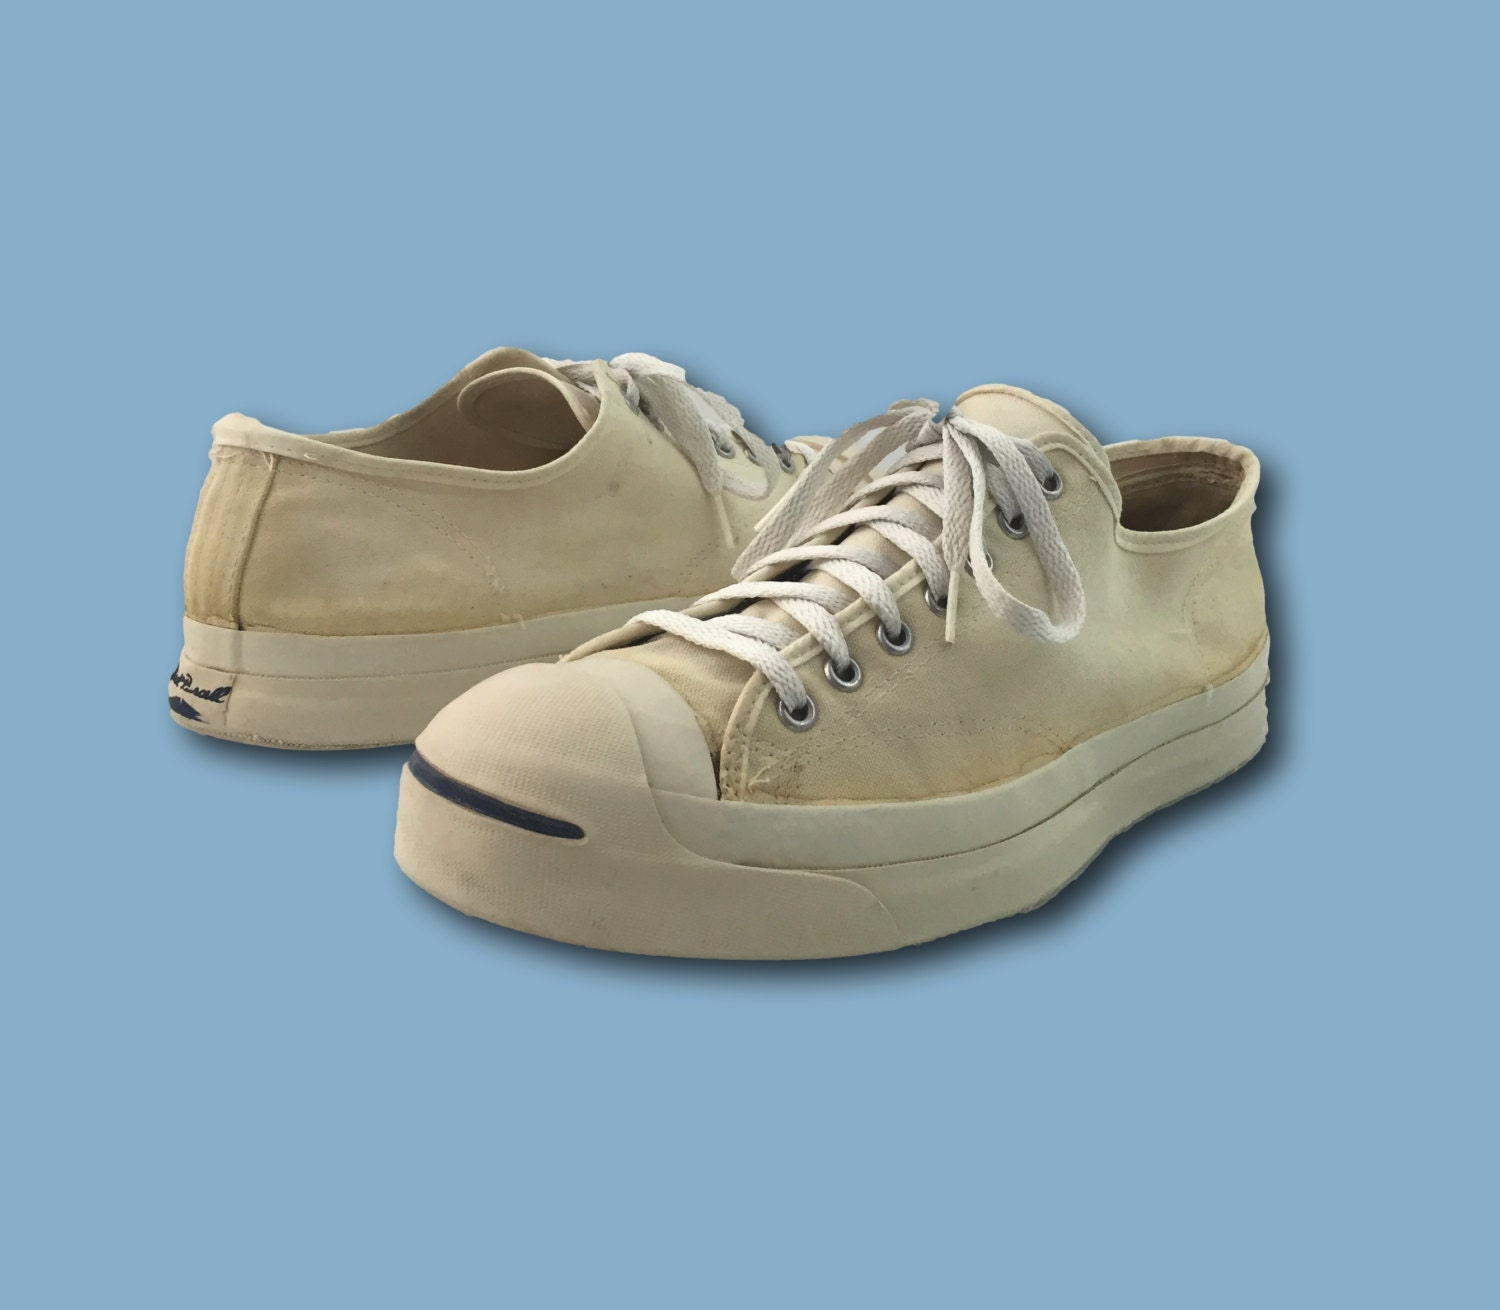 Jack Purcell Vintage Converse 21